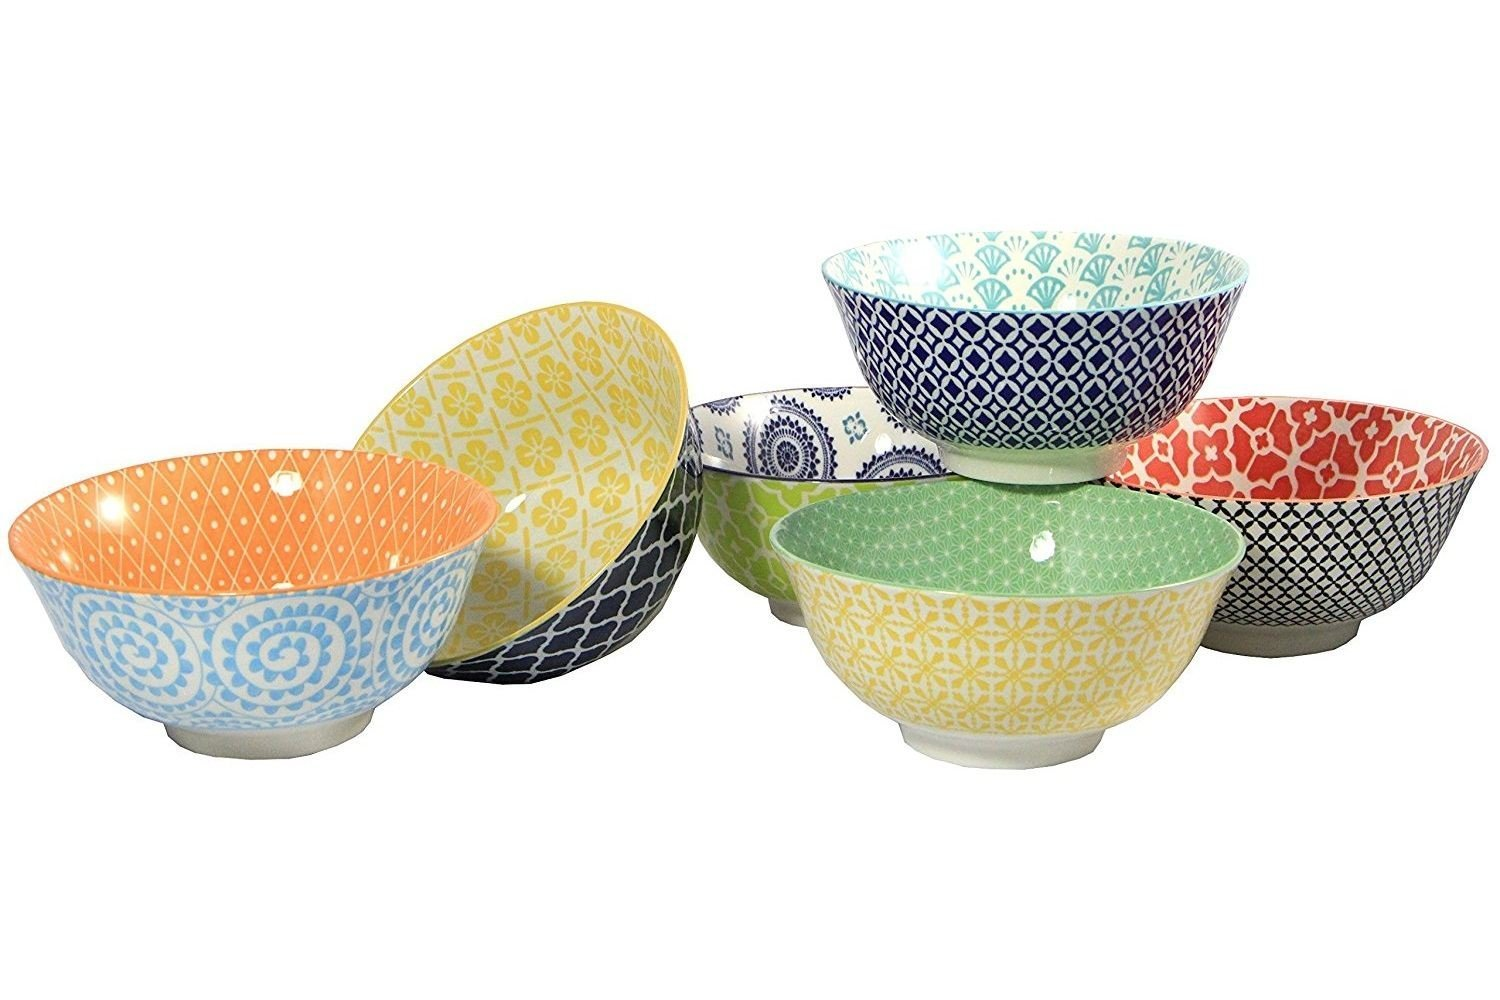 Certified International Large Cereal, Soup, or Pasta Bowls, Chelsea Collection, 6.1 Inch, Set of 6 Assorted Designs TRTAZ11A